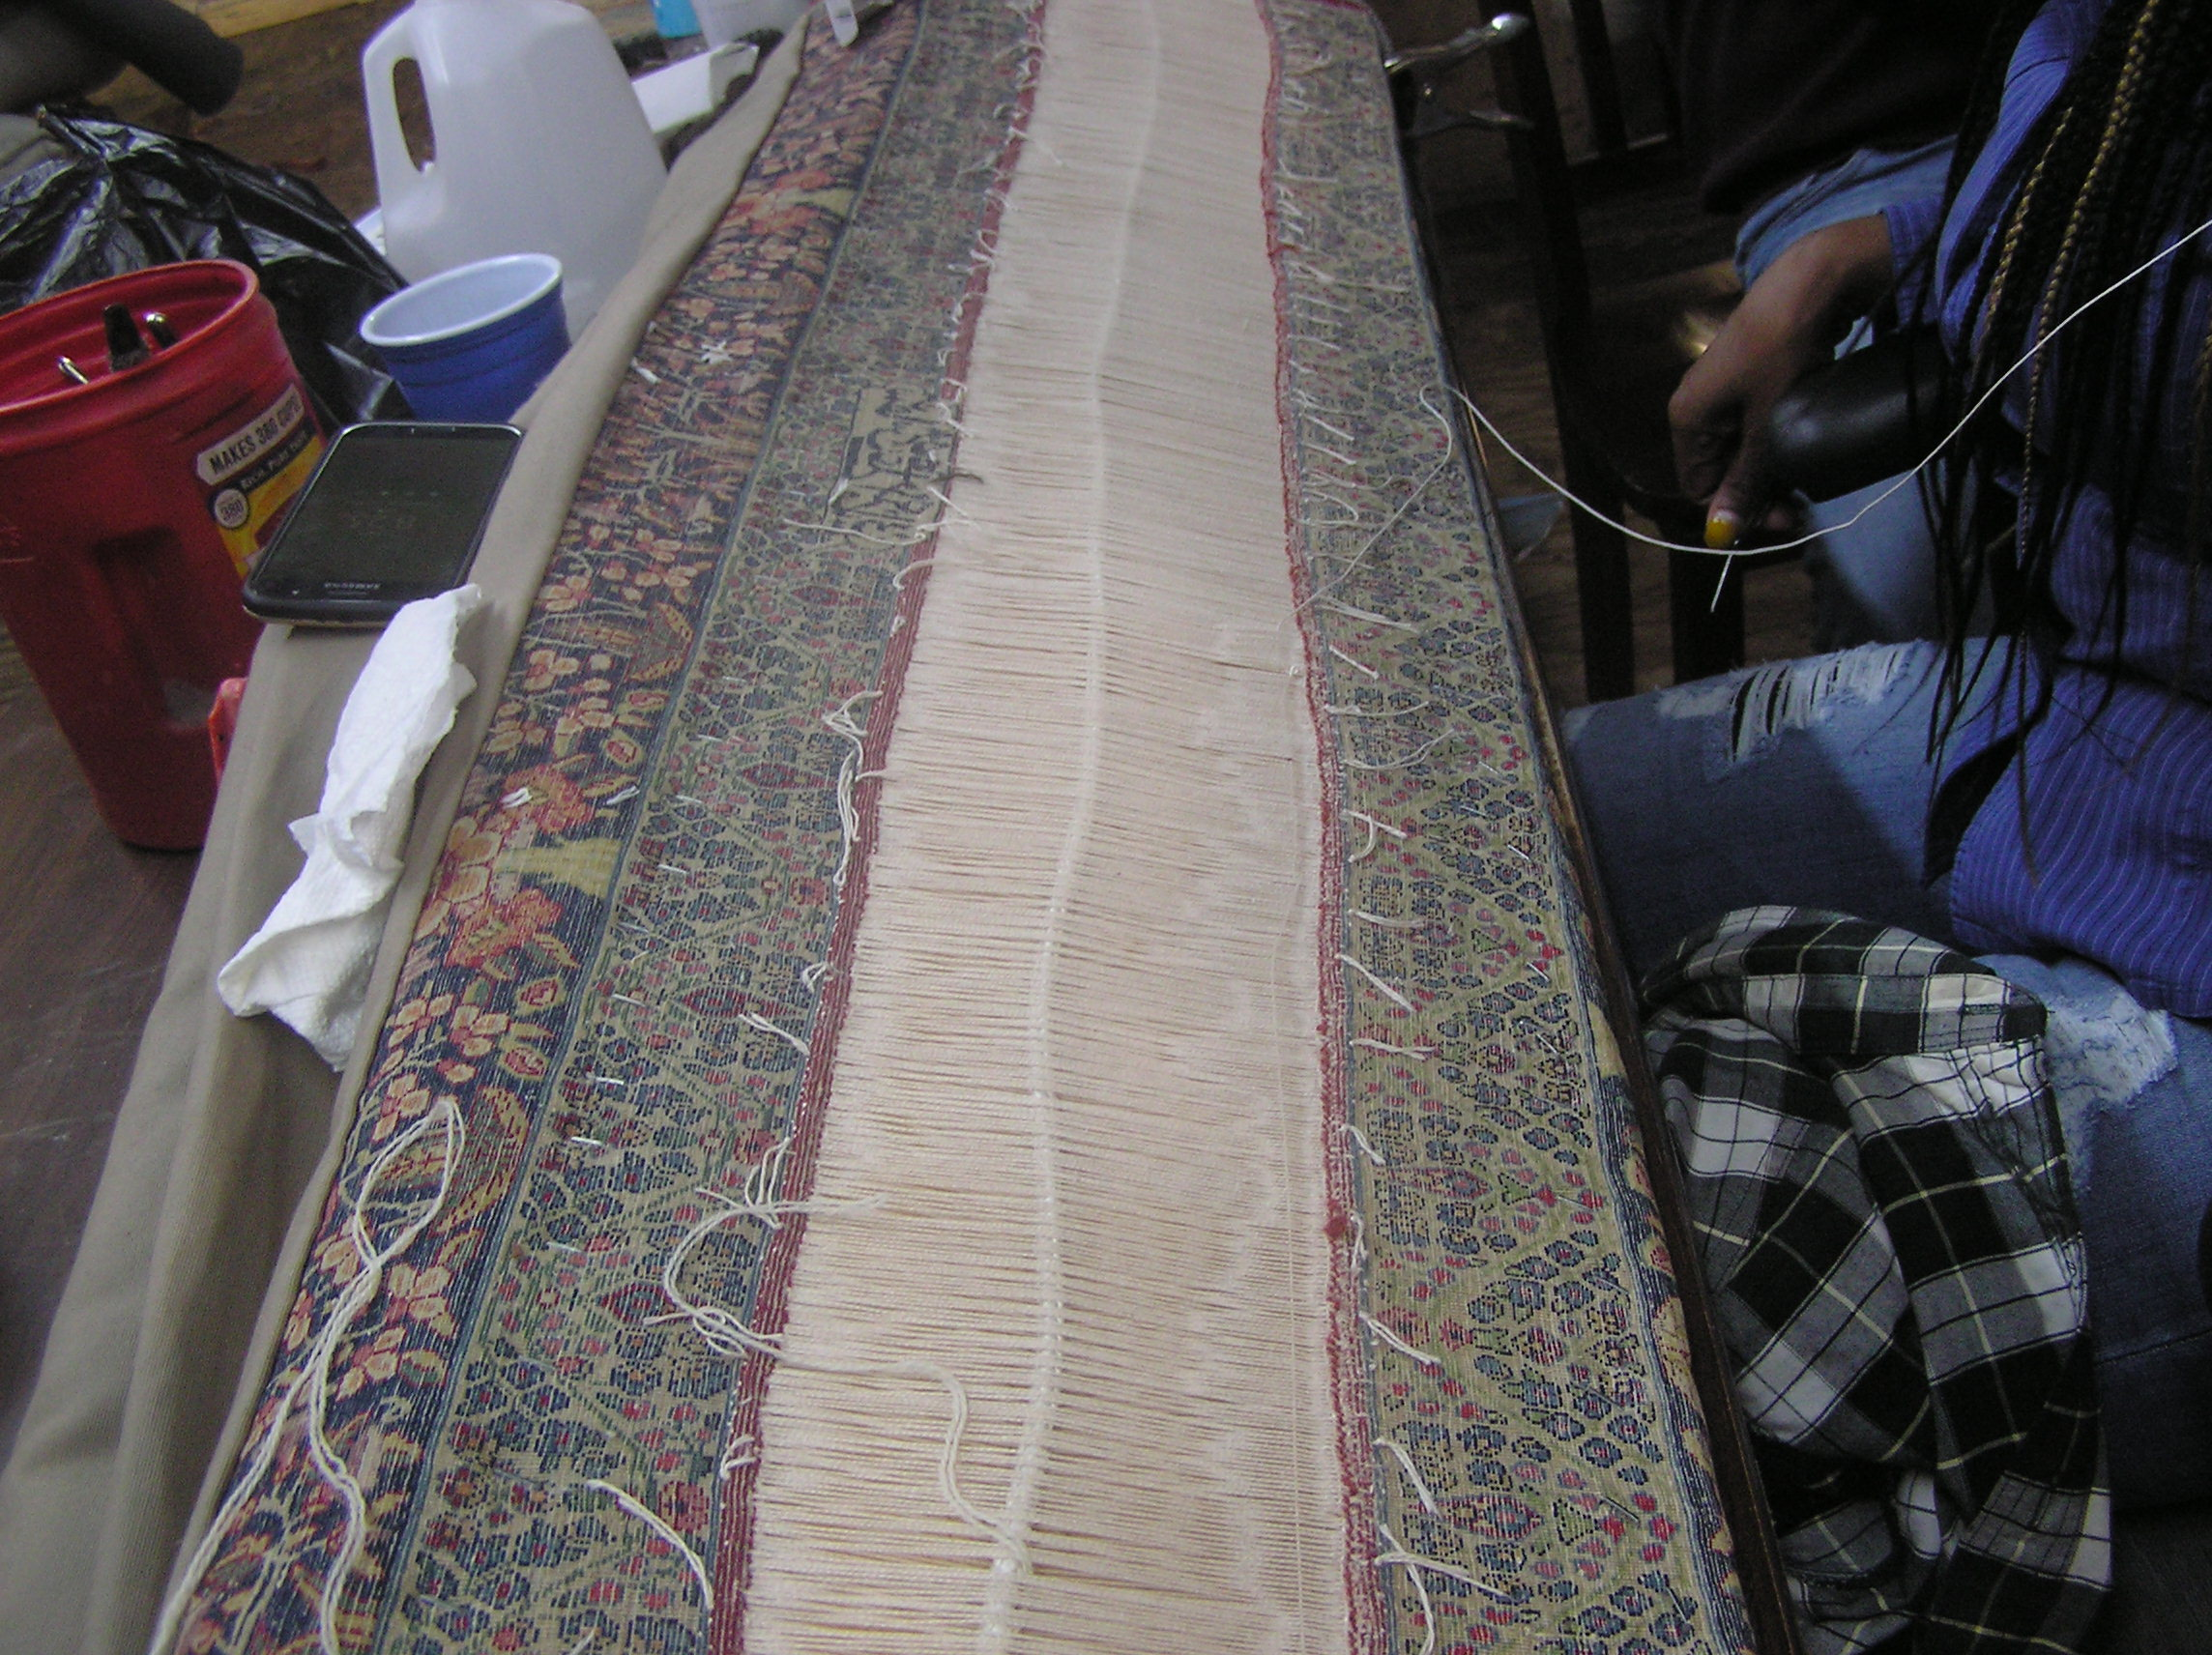 In sarbafi both ends of the rug are connected warp by warp